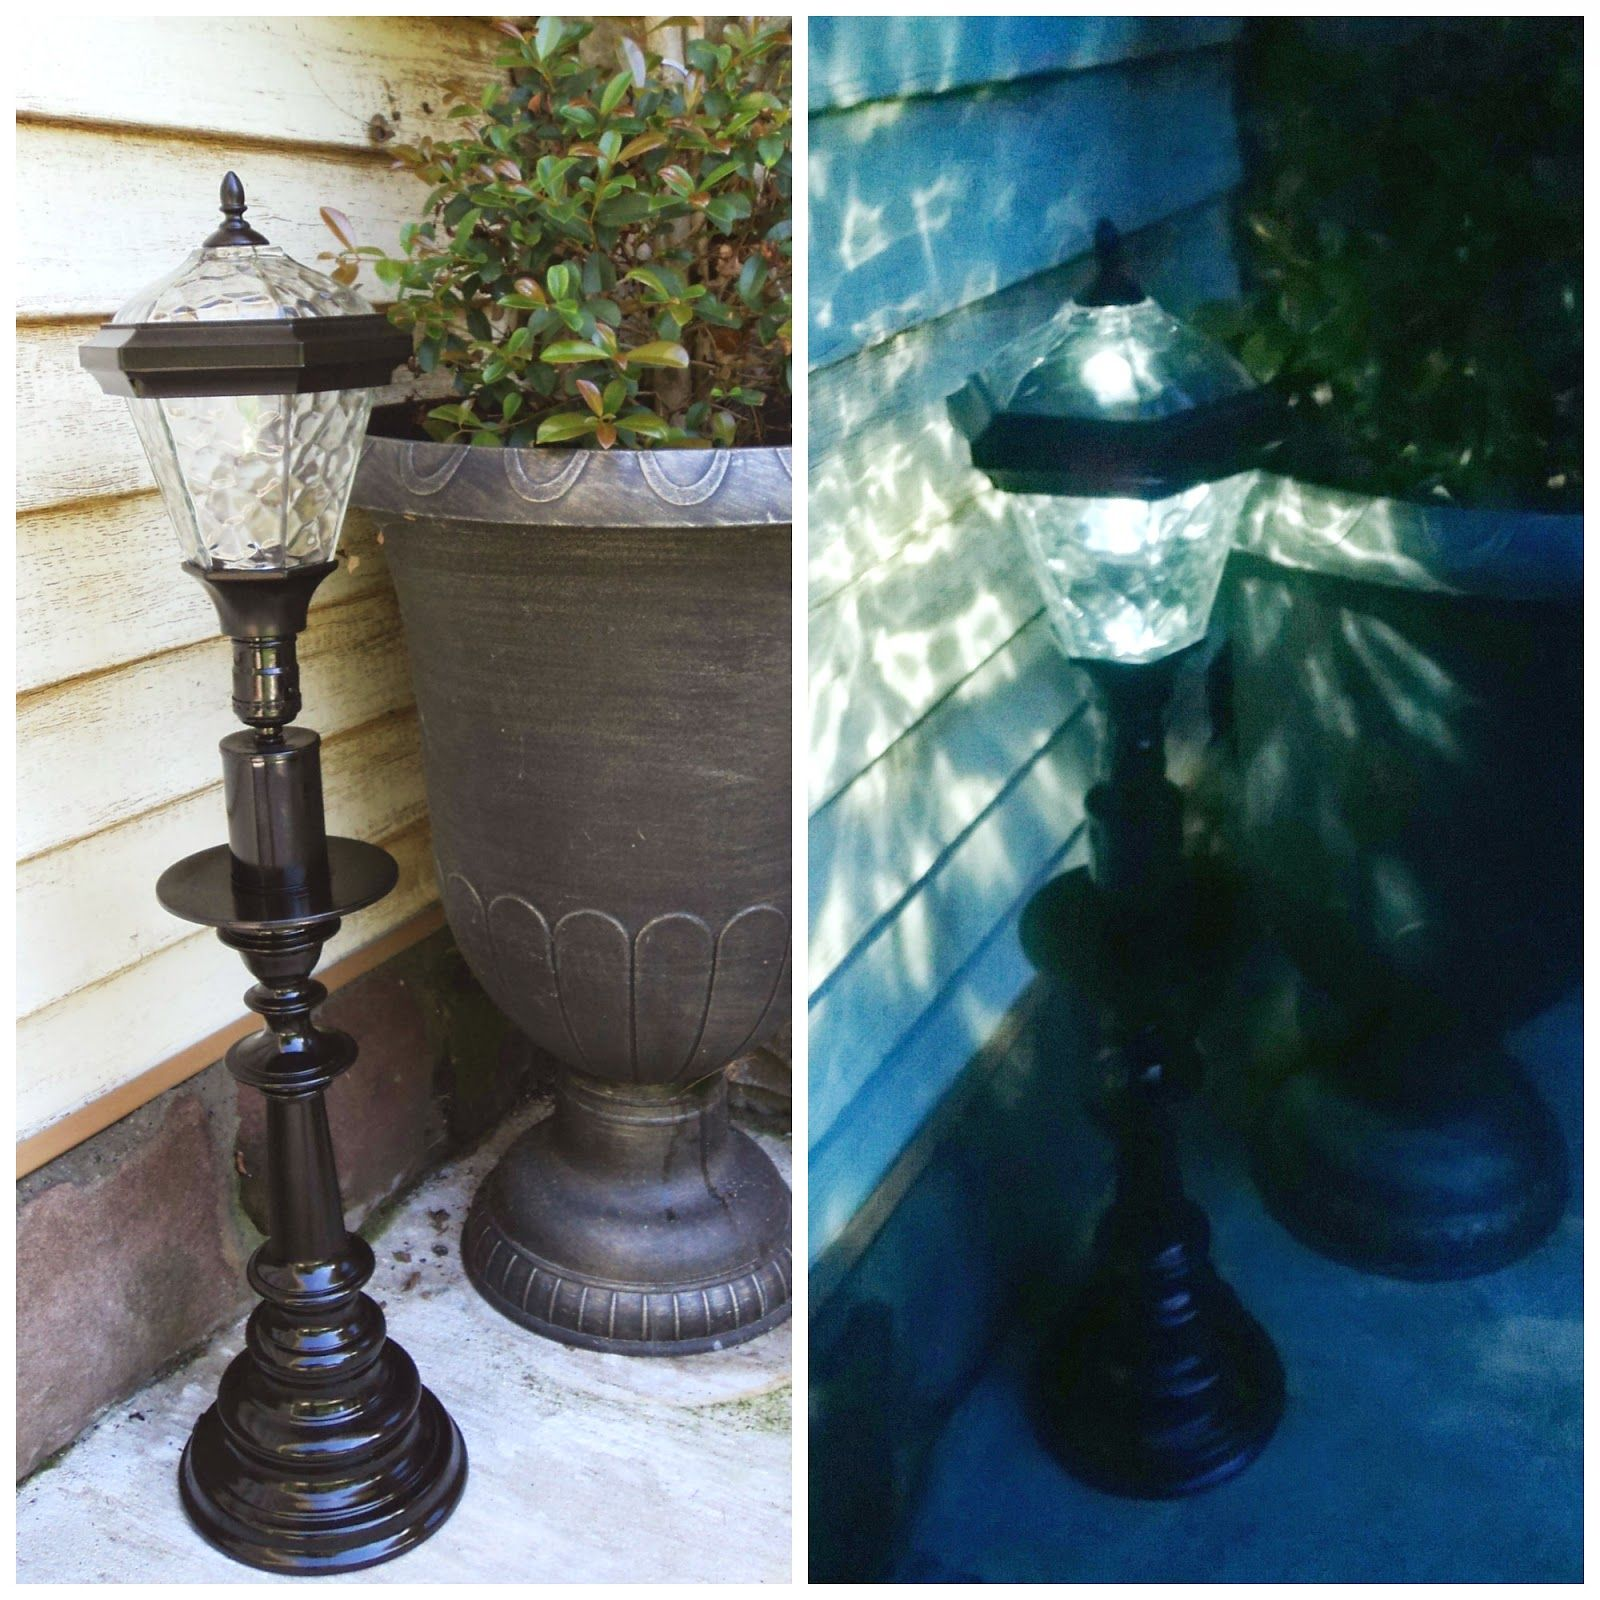 Patio Lights Diy: How To Make Solar Lighting From Regular Light Fixtures